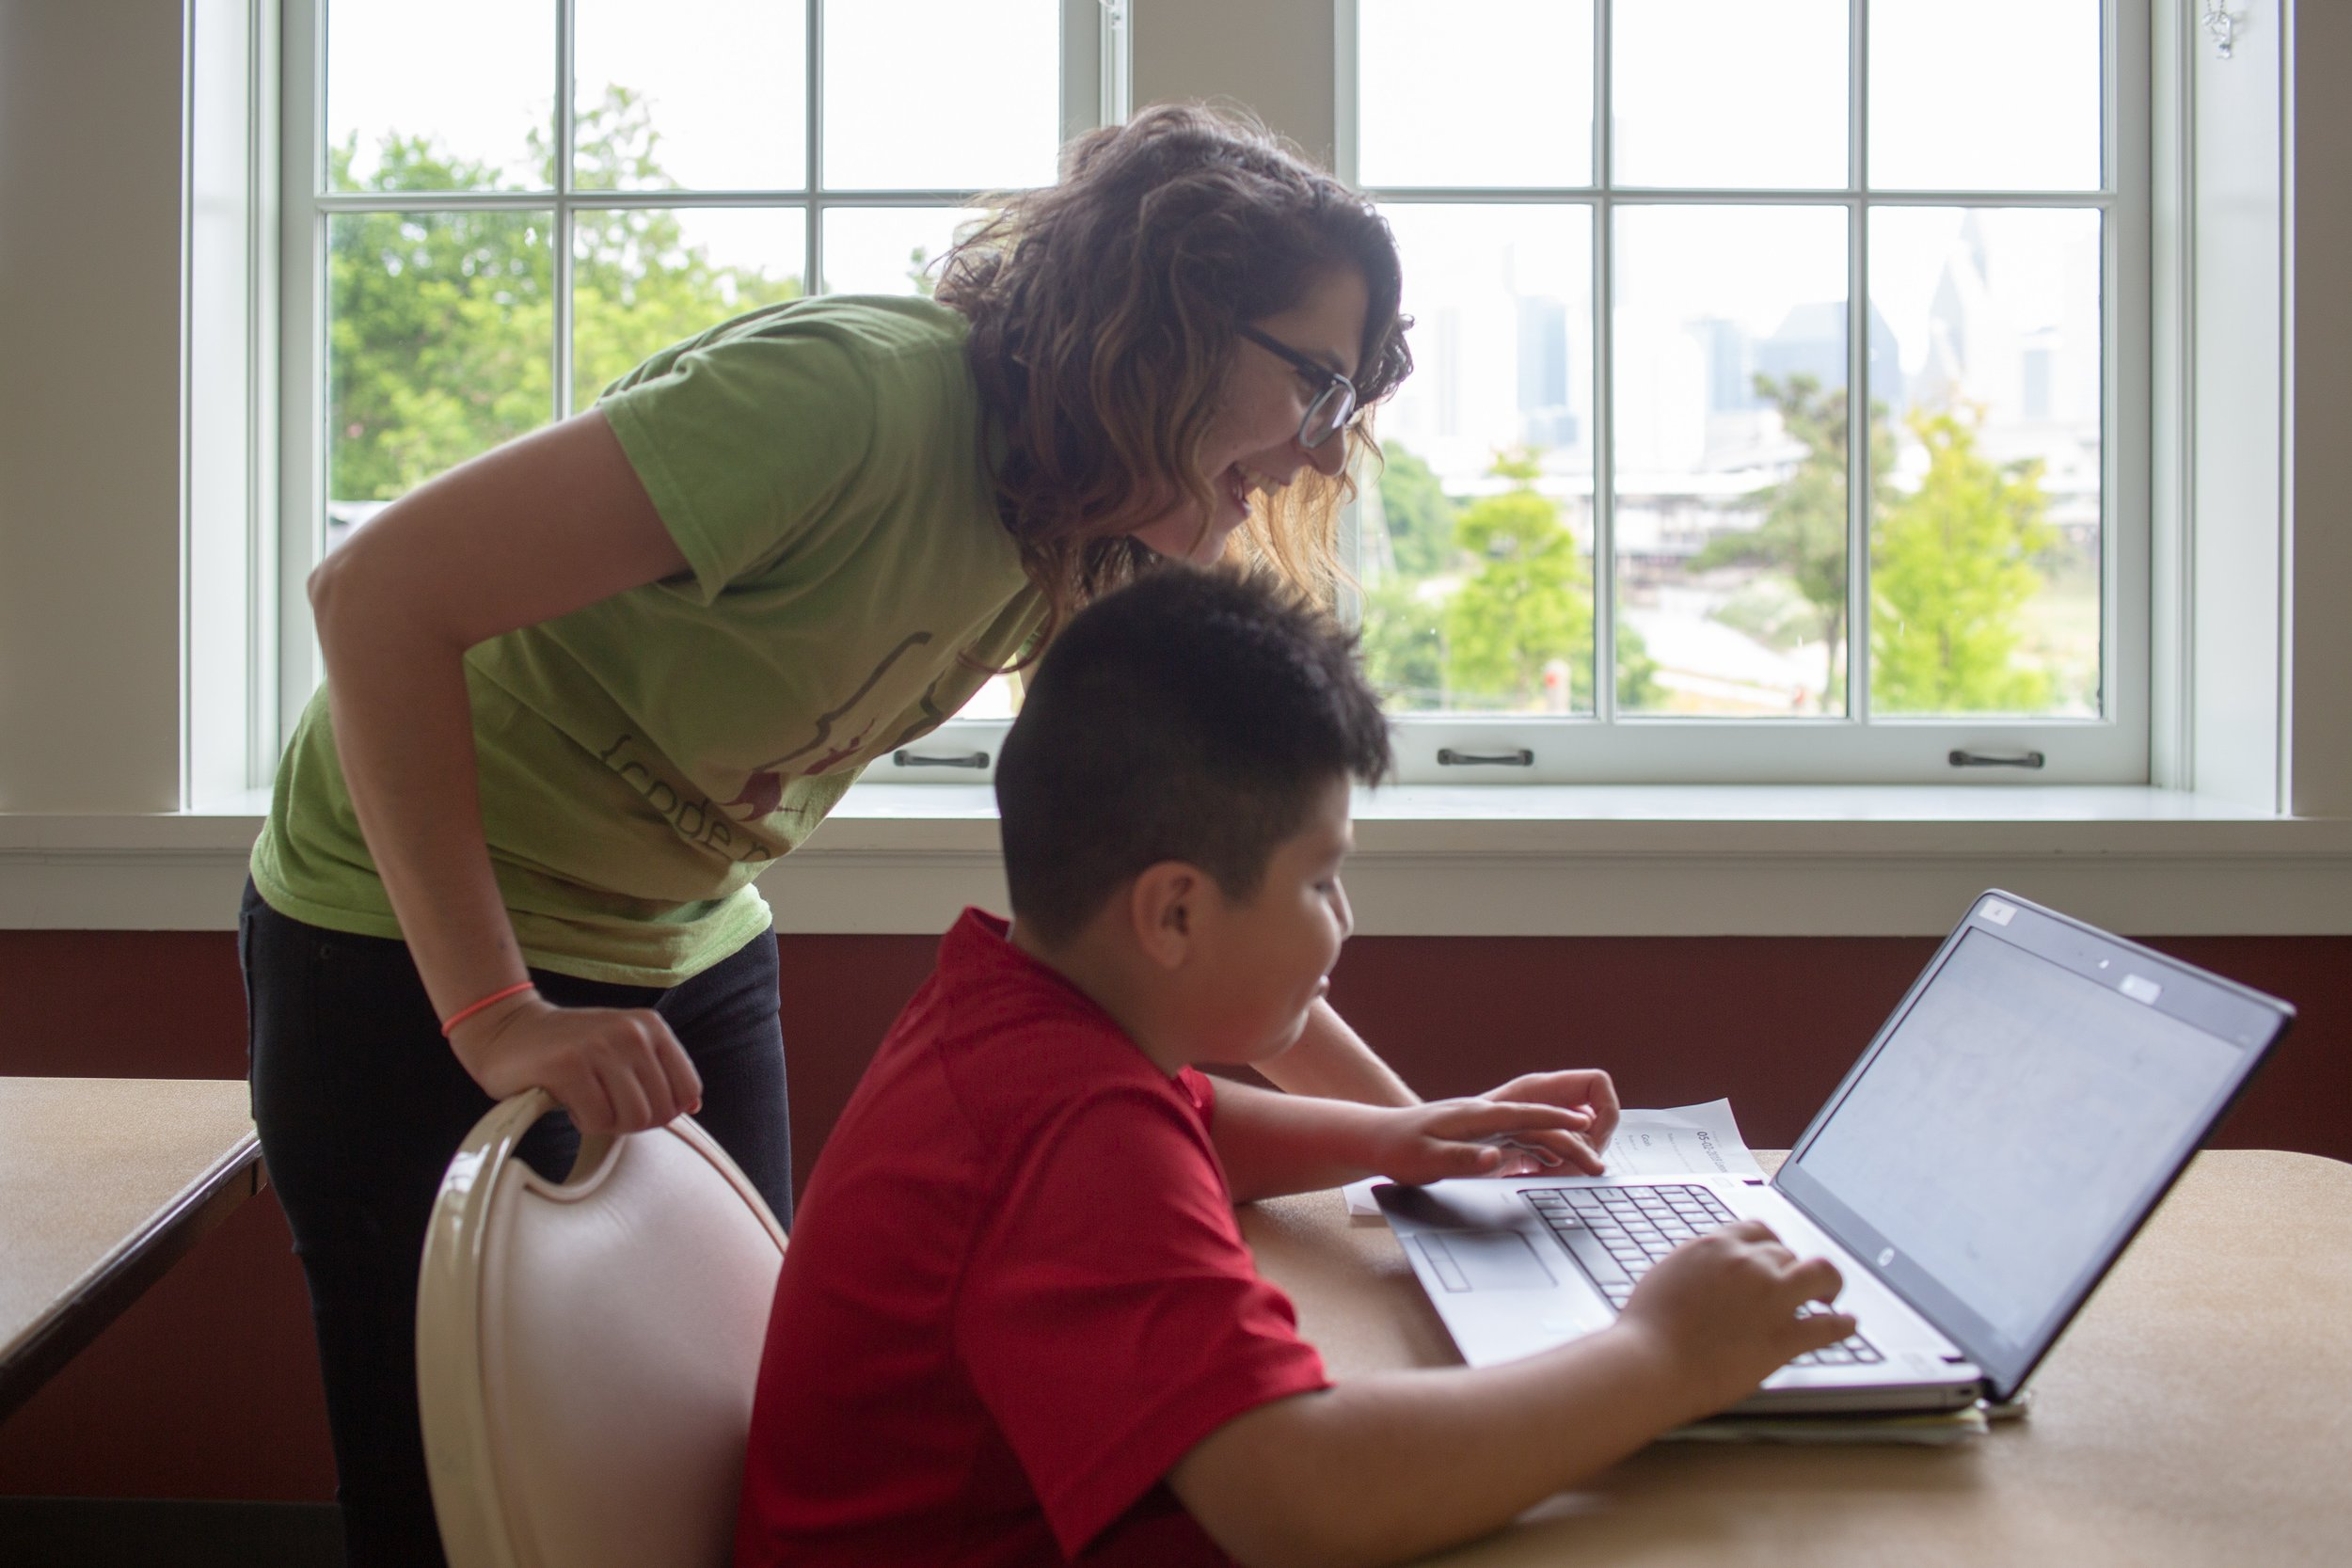 Volunteer Alex is joyful as she helps a student solves a problem. Leonel Castillo Community Center Creative Coding Code Club. Courtesy of Wanjun Zhang. May 4th, 2018.